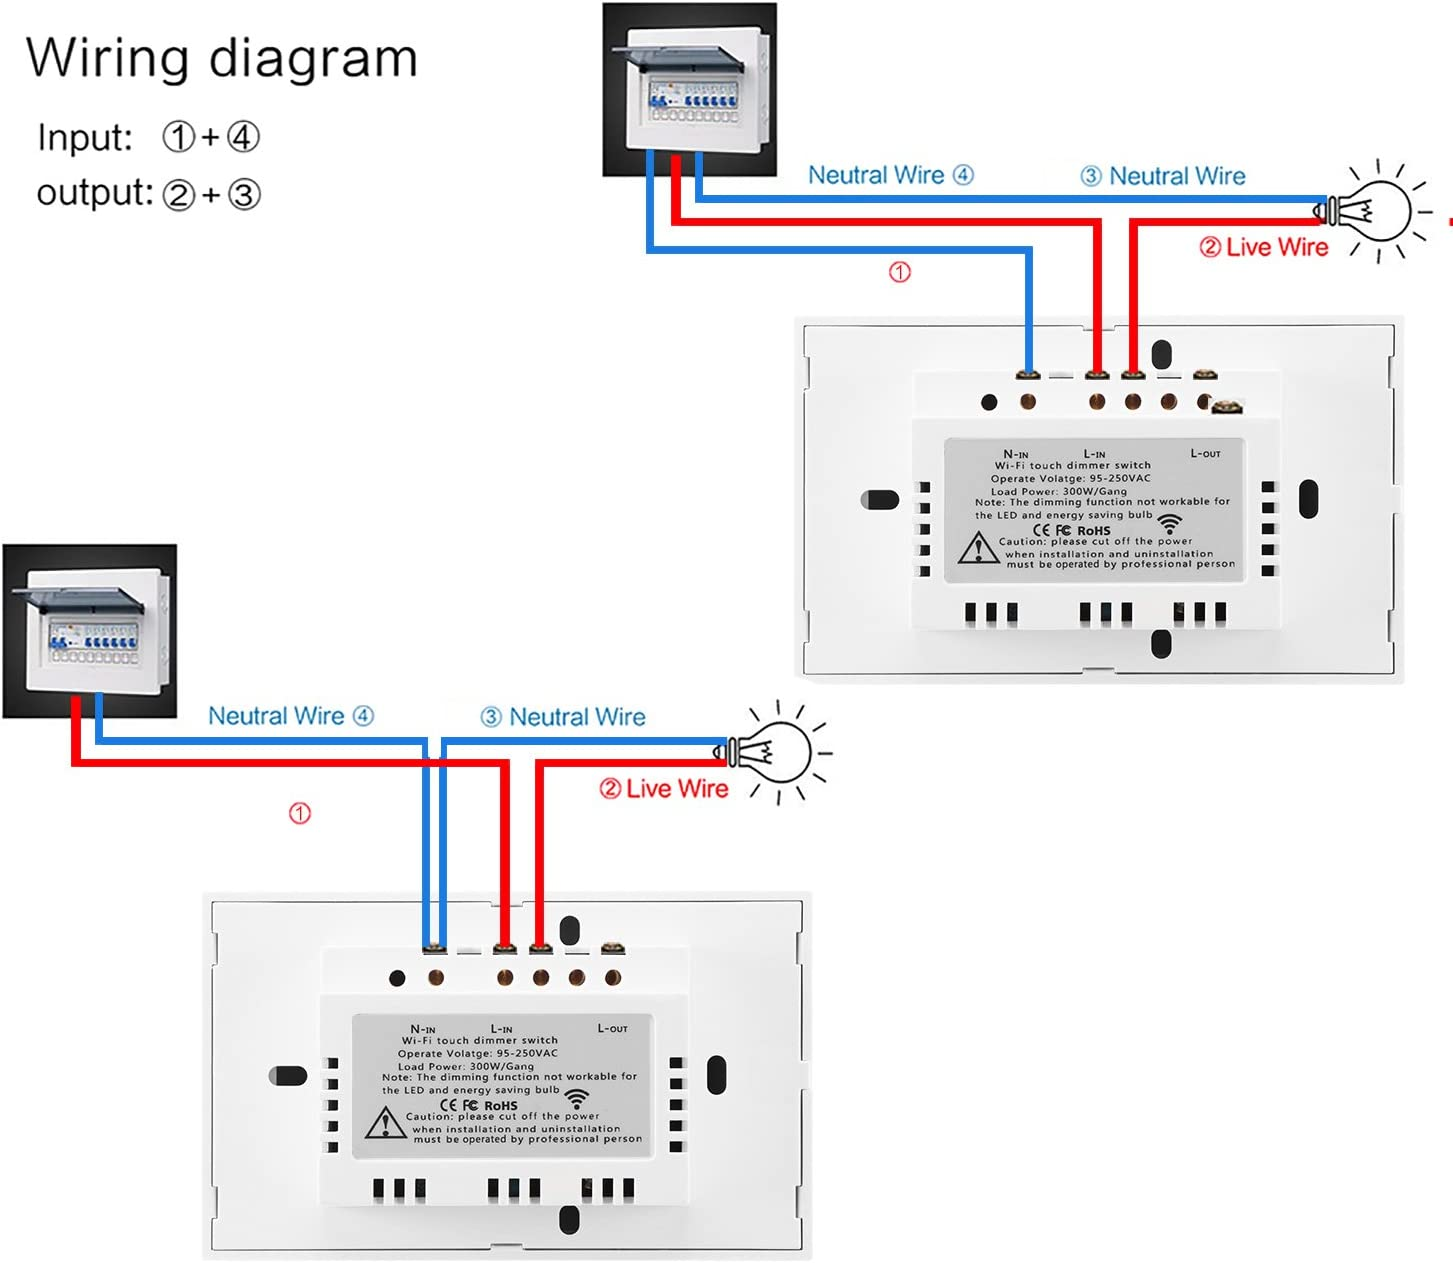 touch dimmer wiring diagram amazon com ourleeme smart wifi dimmer light switch  wall mounted  ourleeme smart wifi dimmer light switch